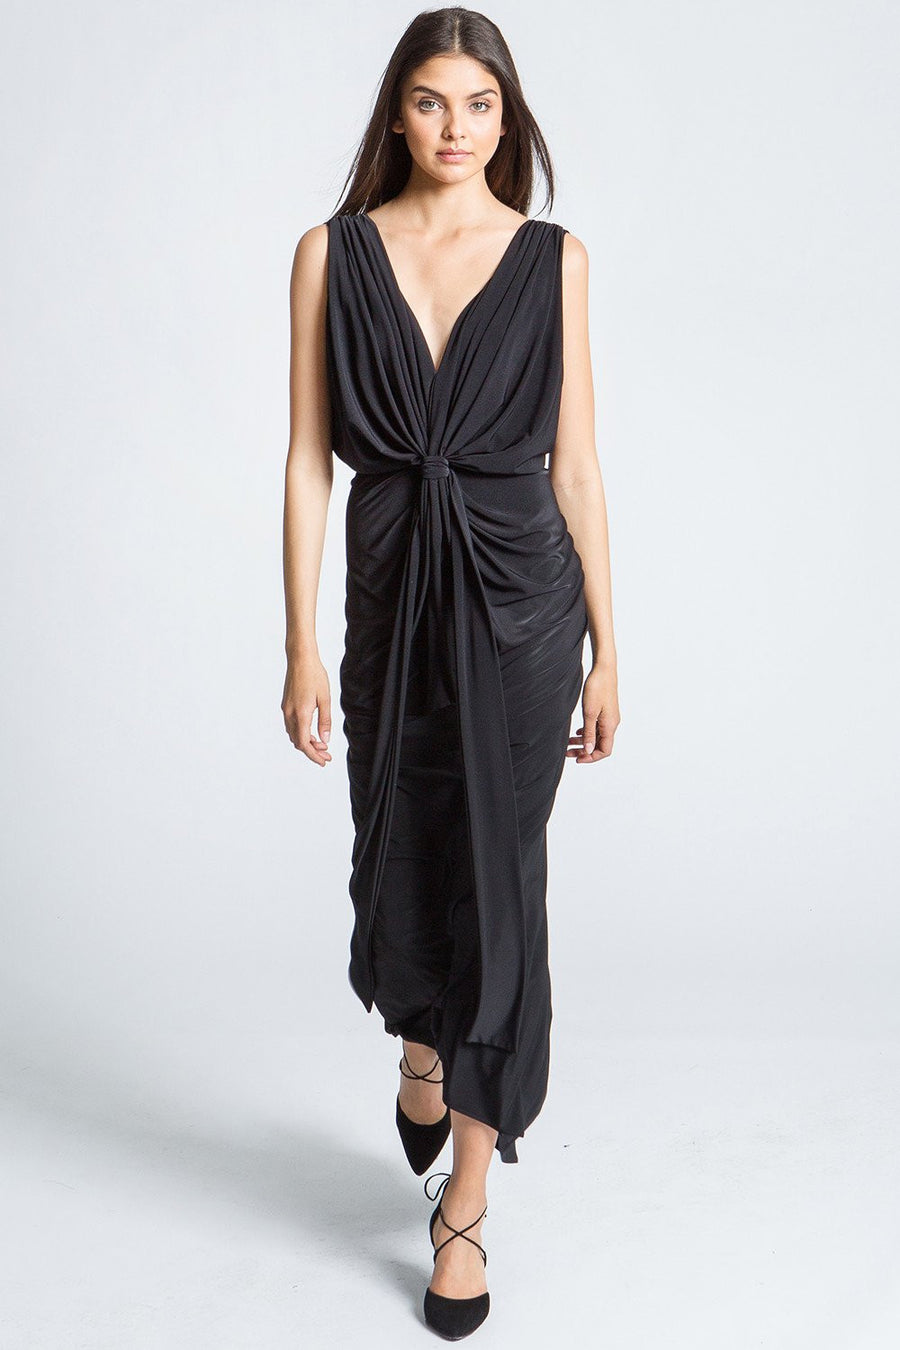 Xenia Dress - Black - Pavilion